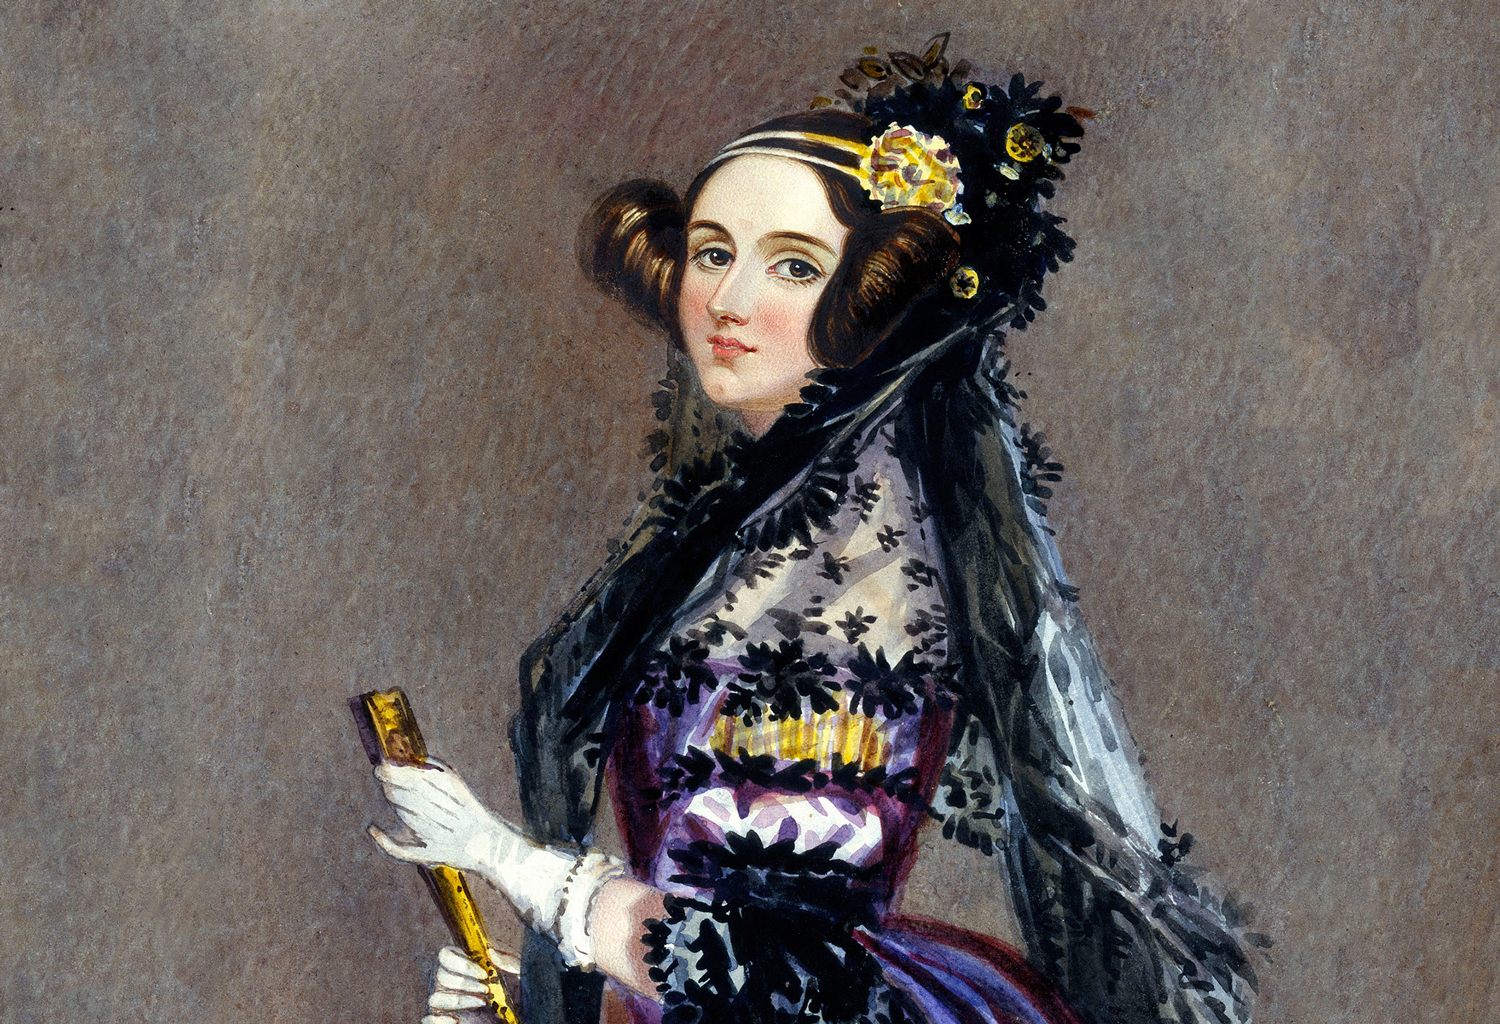 Painting of woman in period dress holding a fan